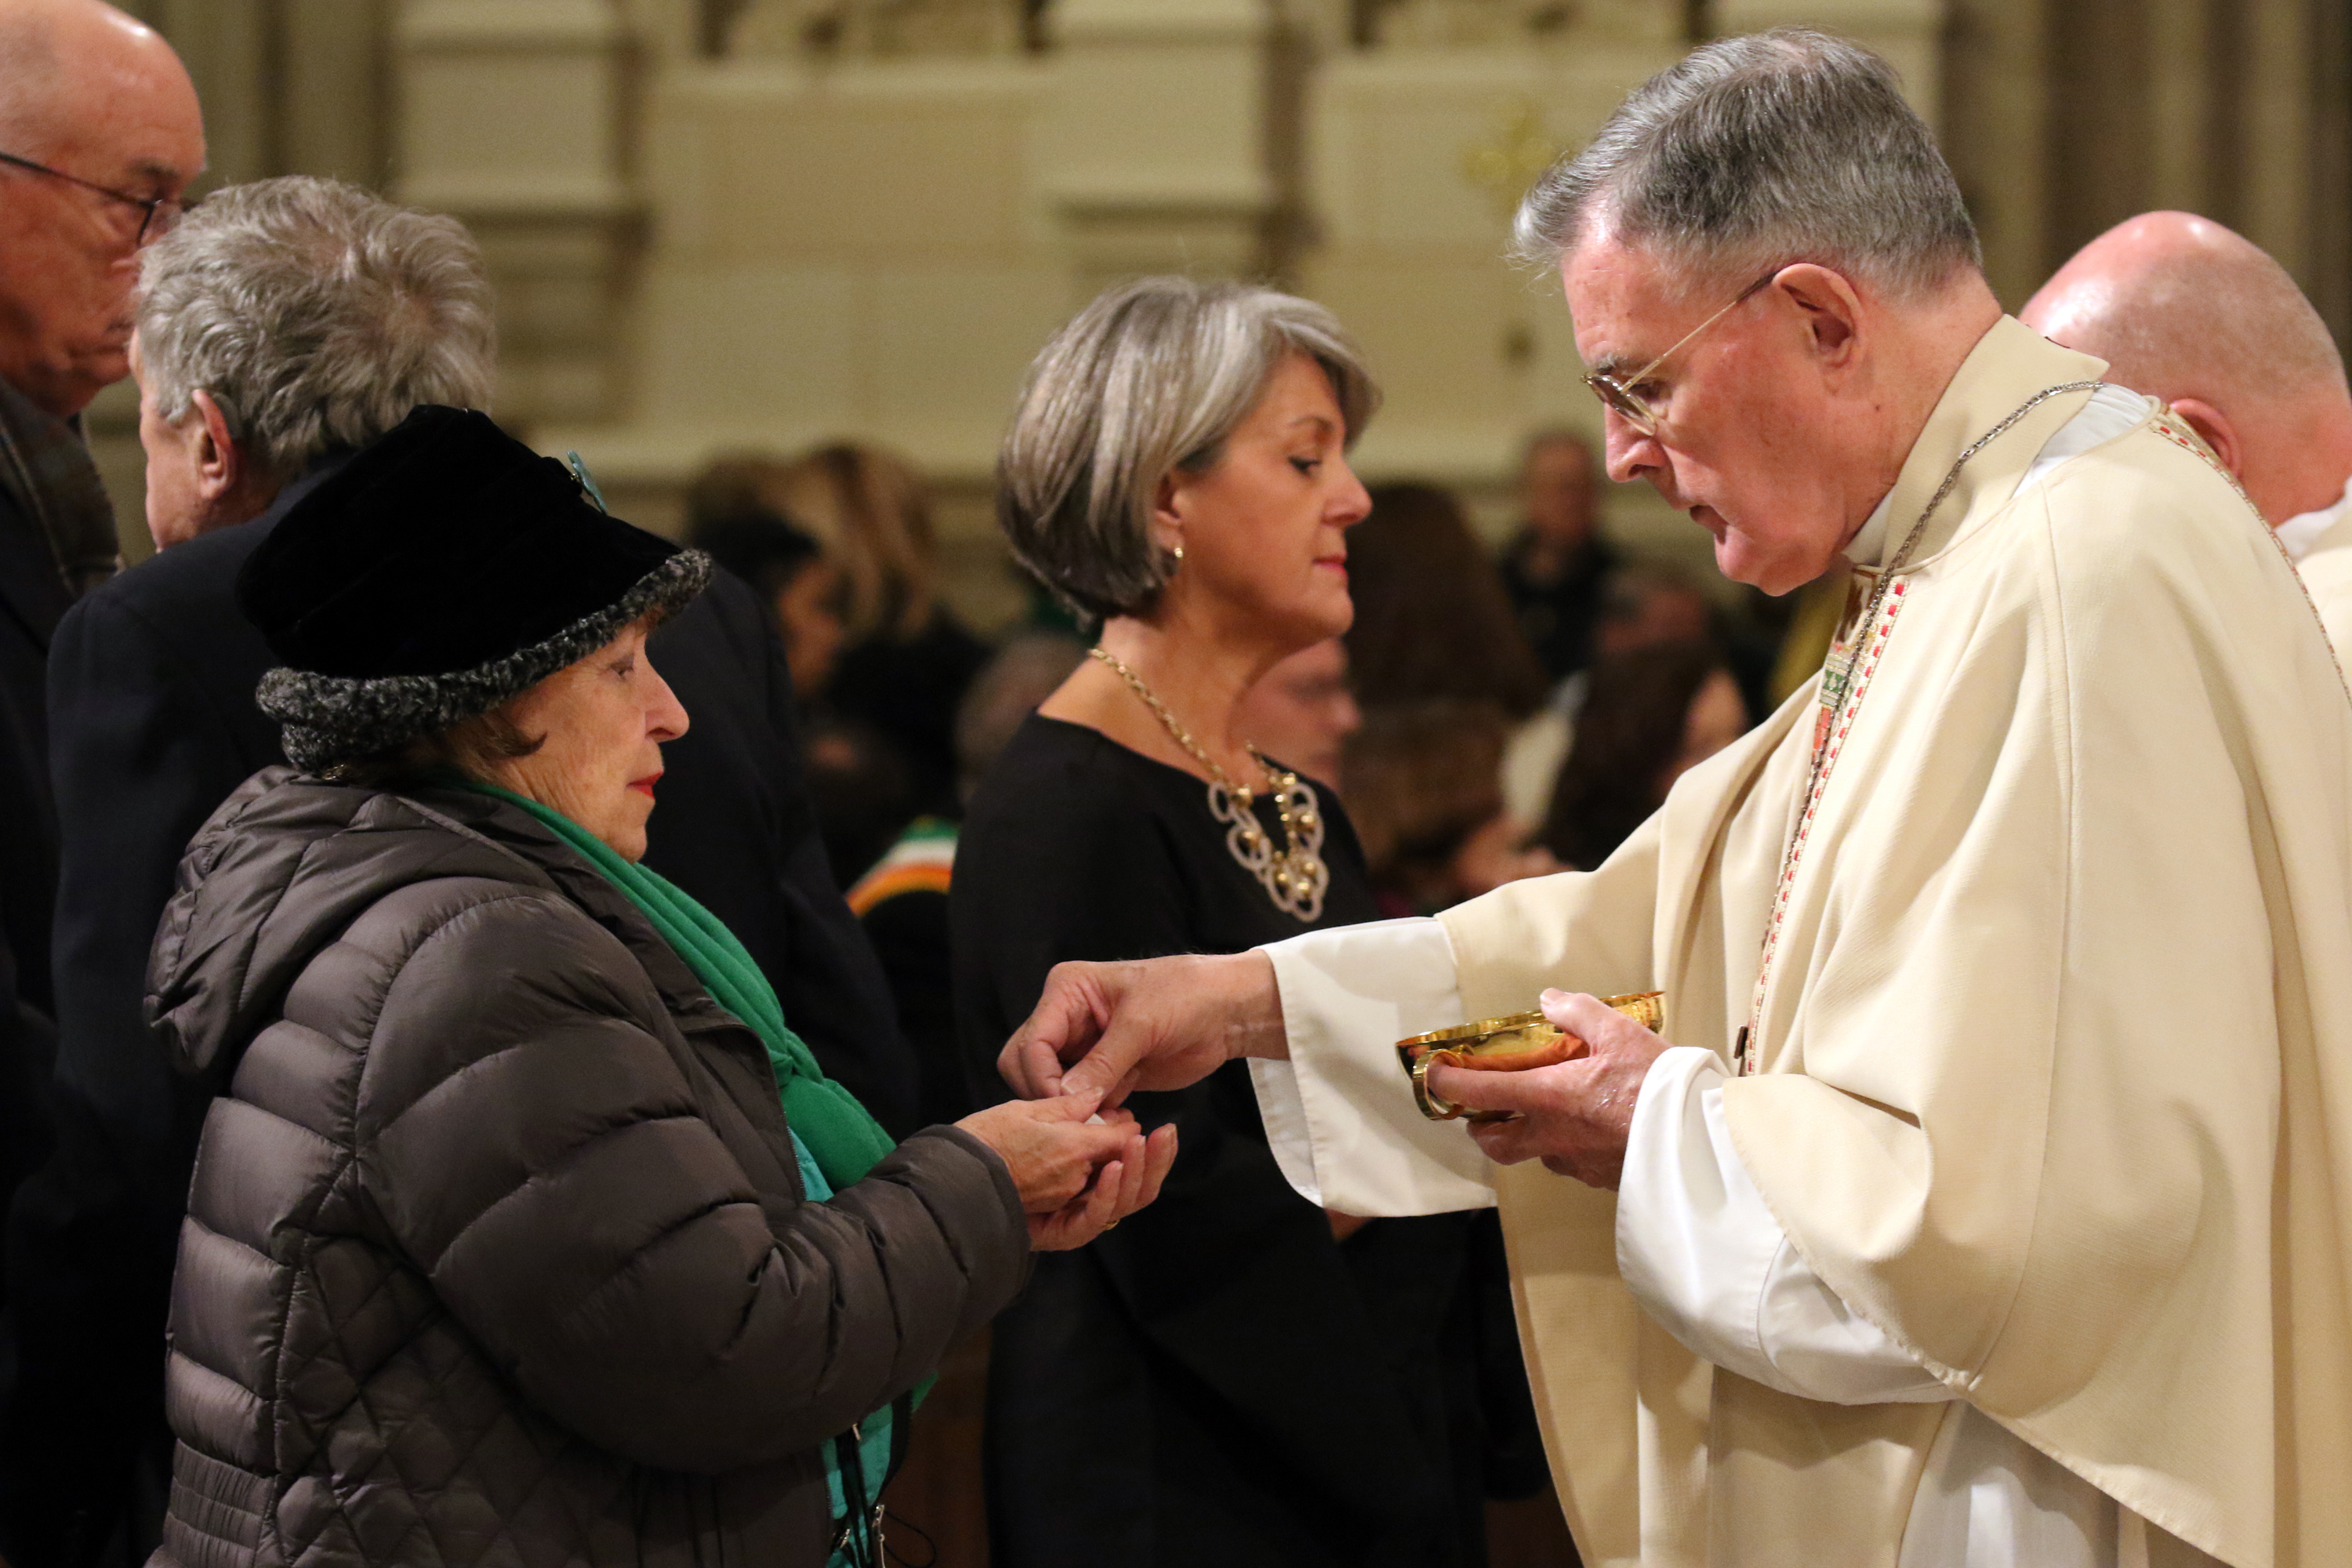 Watch How to Take Communion in the Catholic Church video